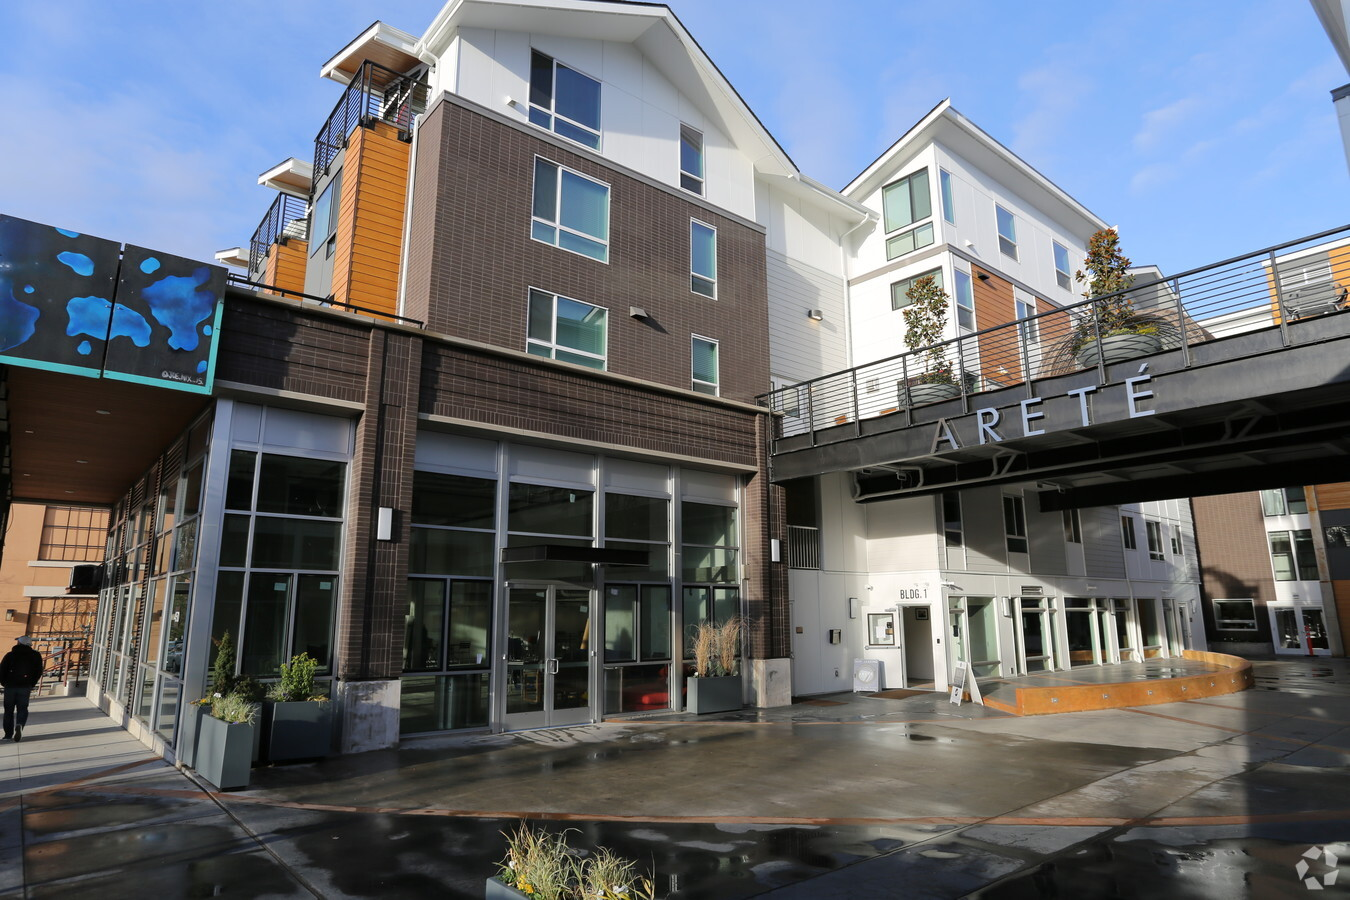 Arete Kirkland 450 Central Way Kirkland Wa 98033 Apartments Property For